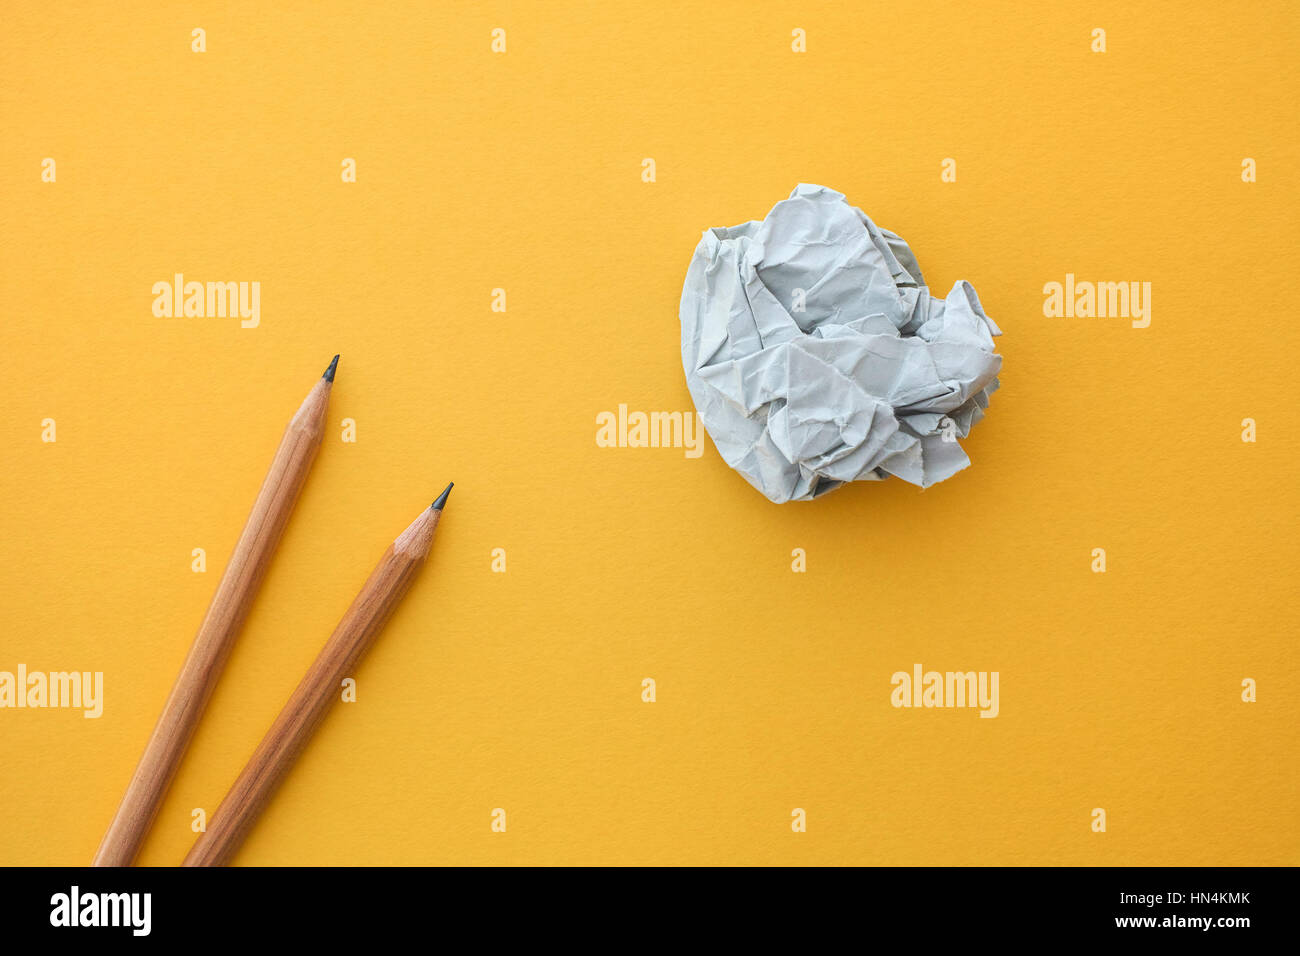 Two pencils and paper ball. Idea Concept. - Stock Image